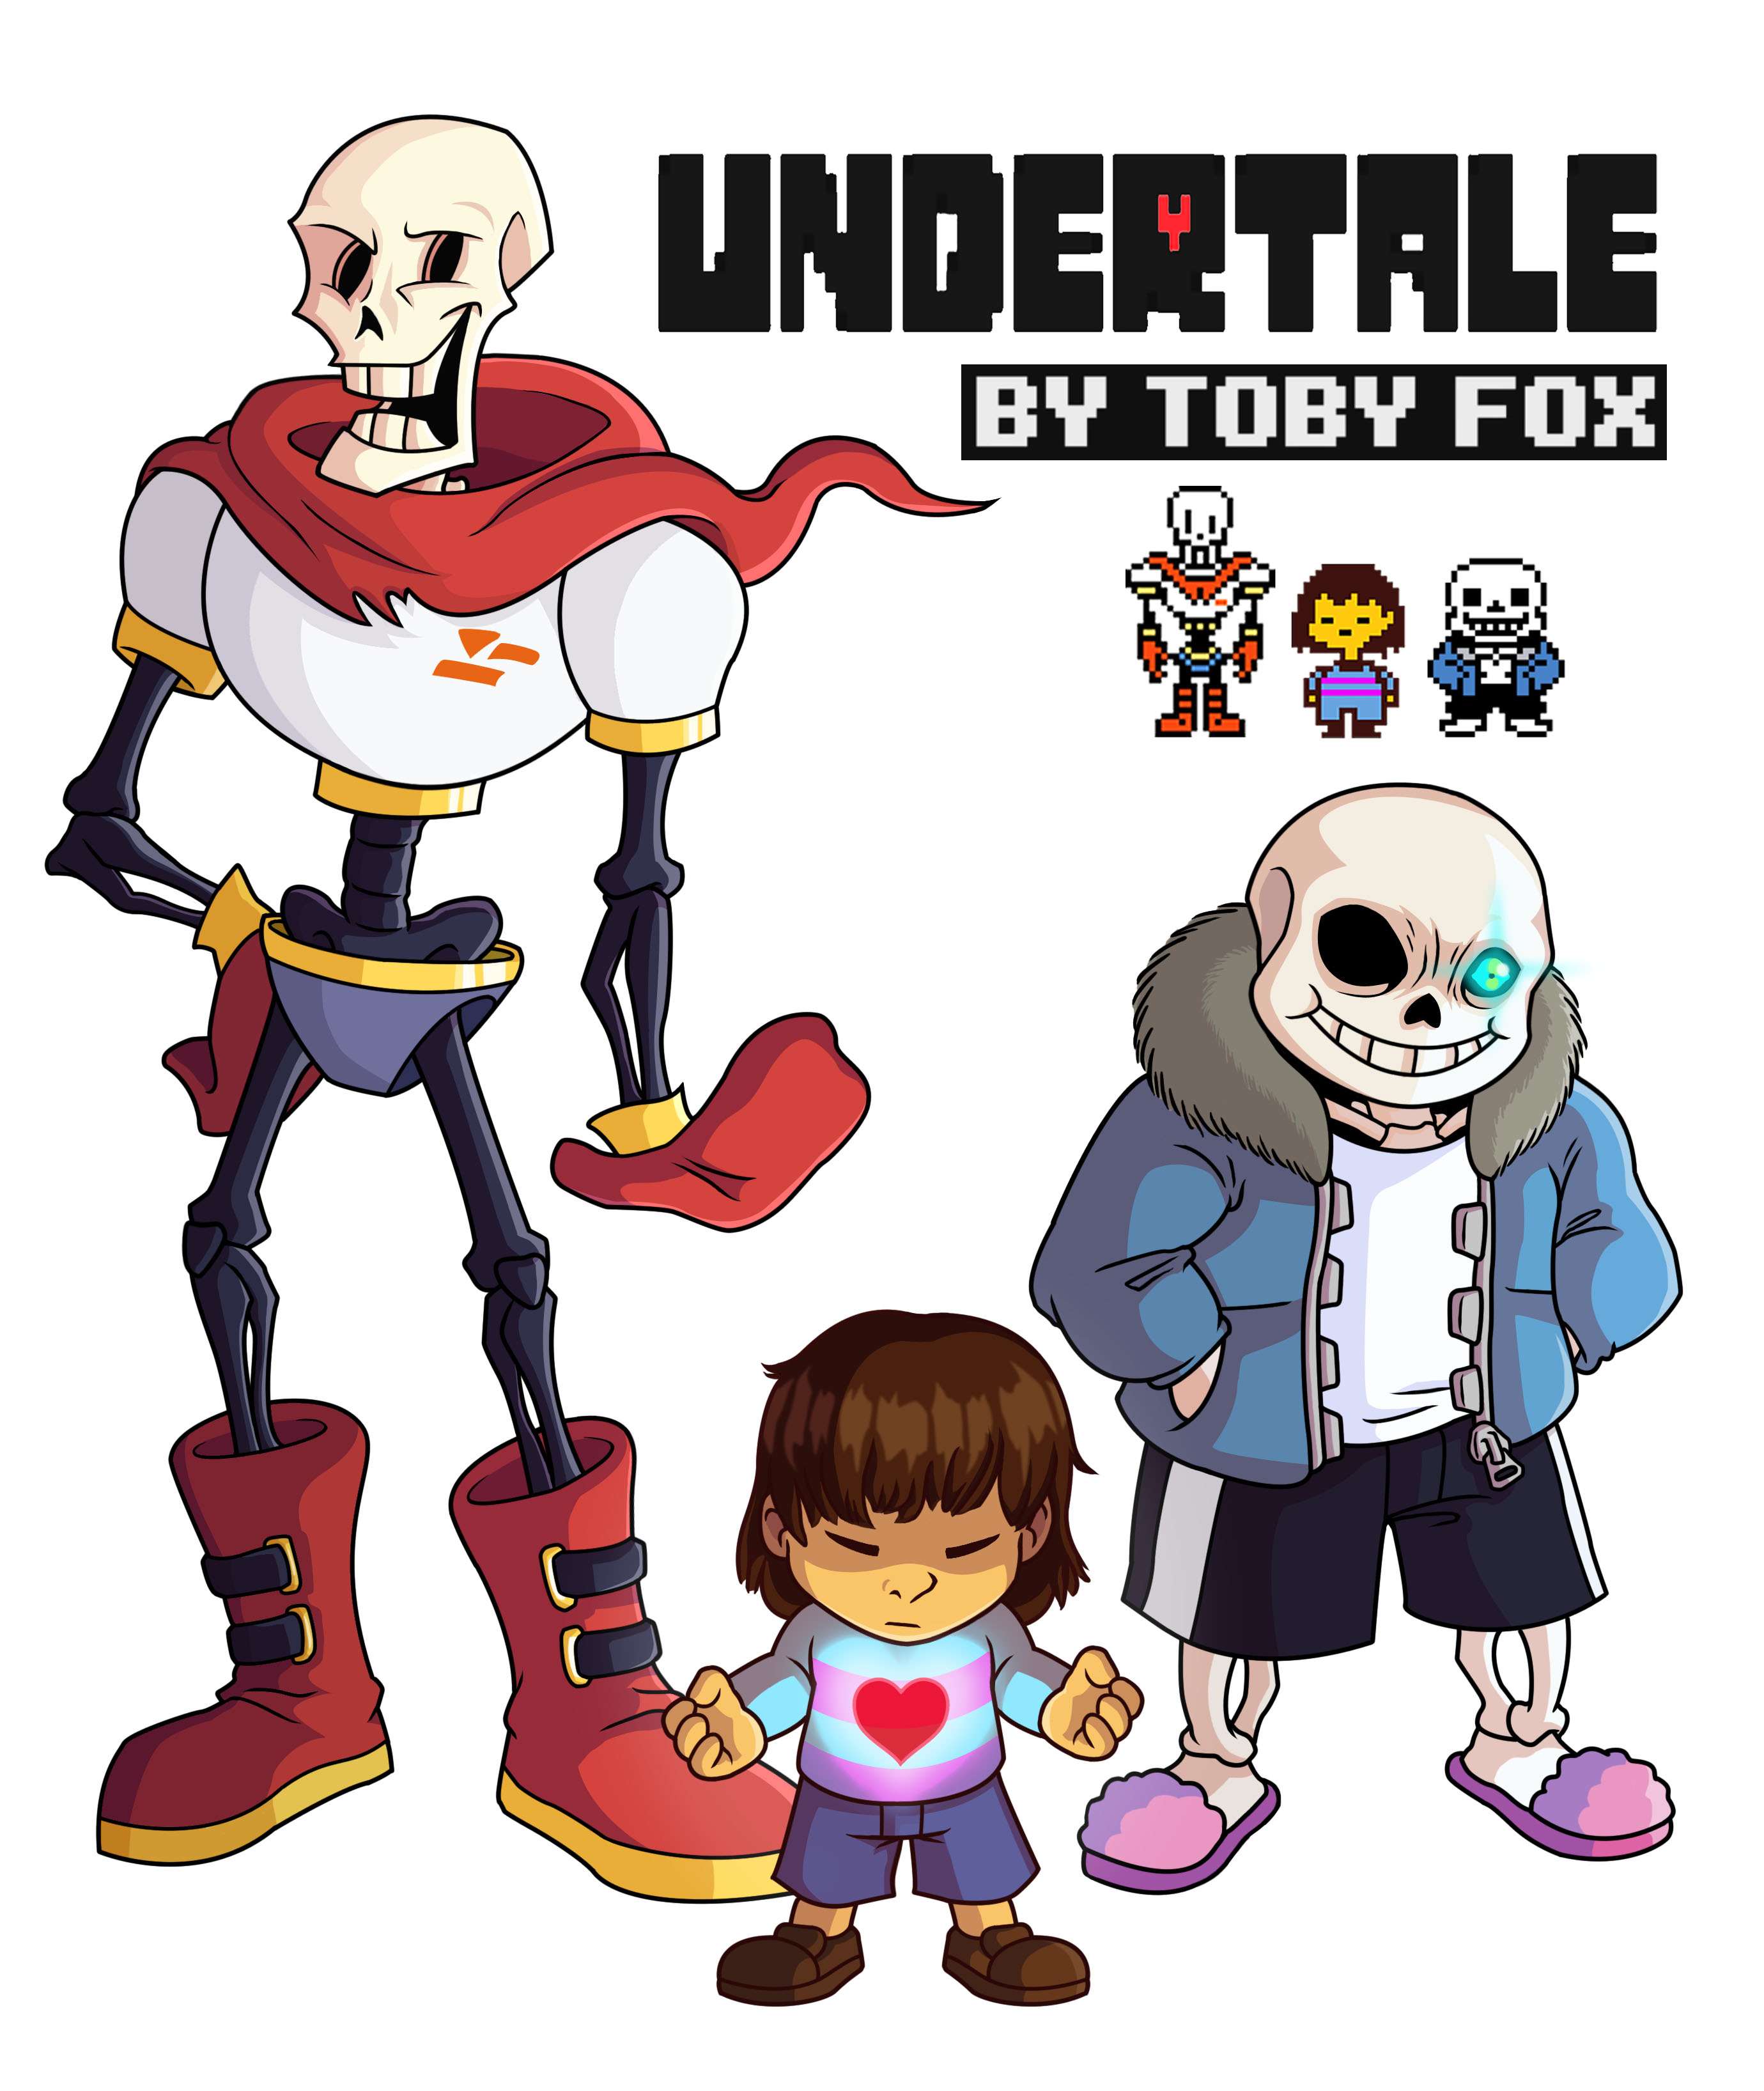 Sans, Frisk, and Papyrus by Eeveewhite97 on DeviantArt